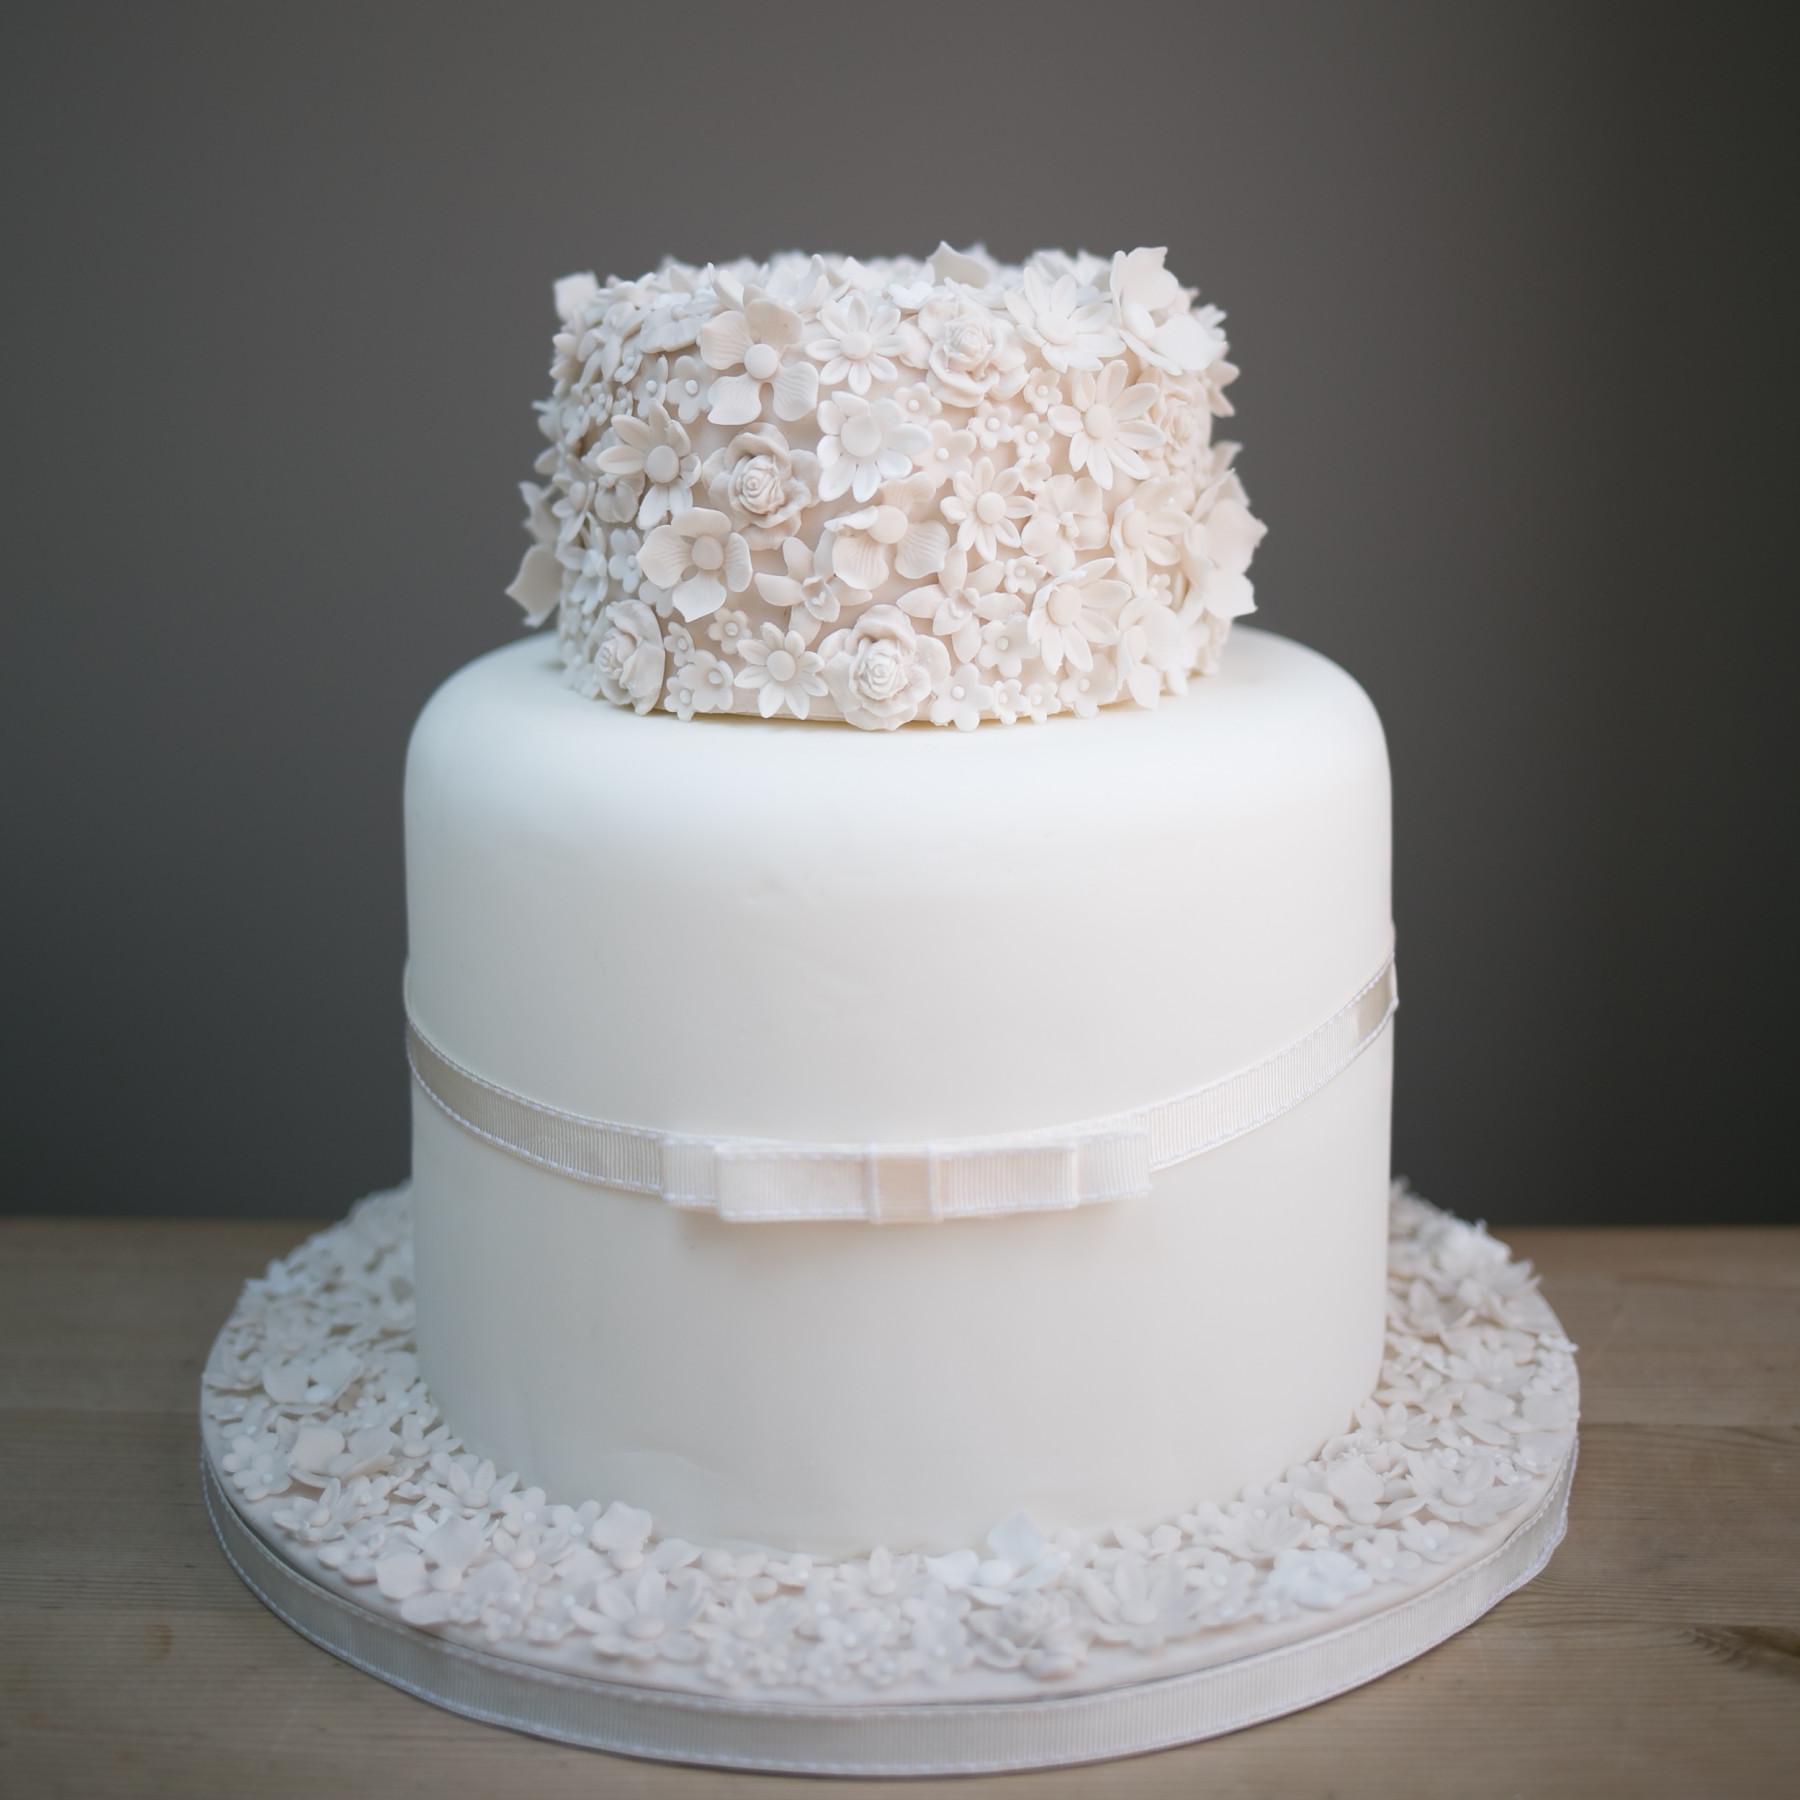 Wedding Cakes | Cake! By Chloe - Henley On Thames and Stow-on-the-Wold